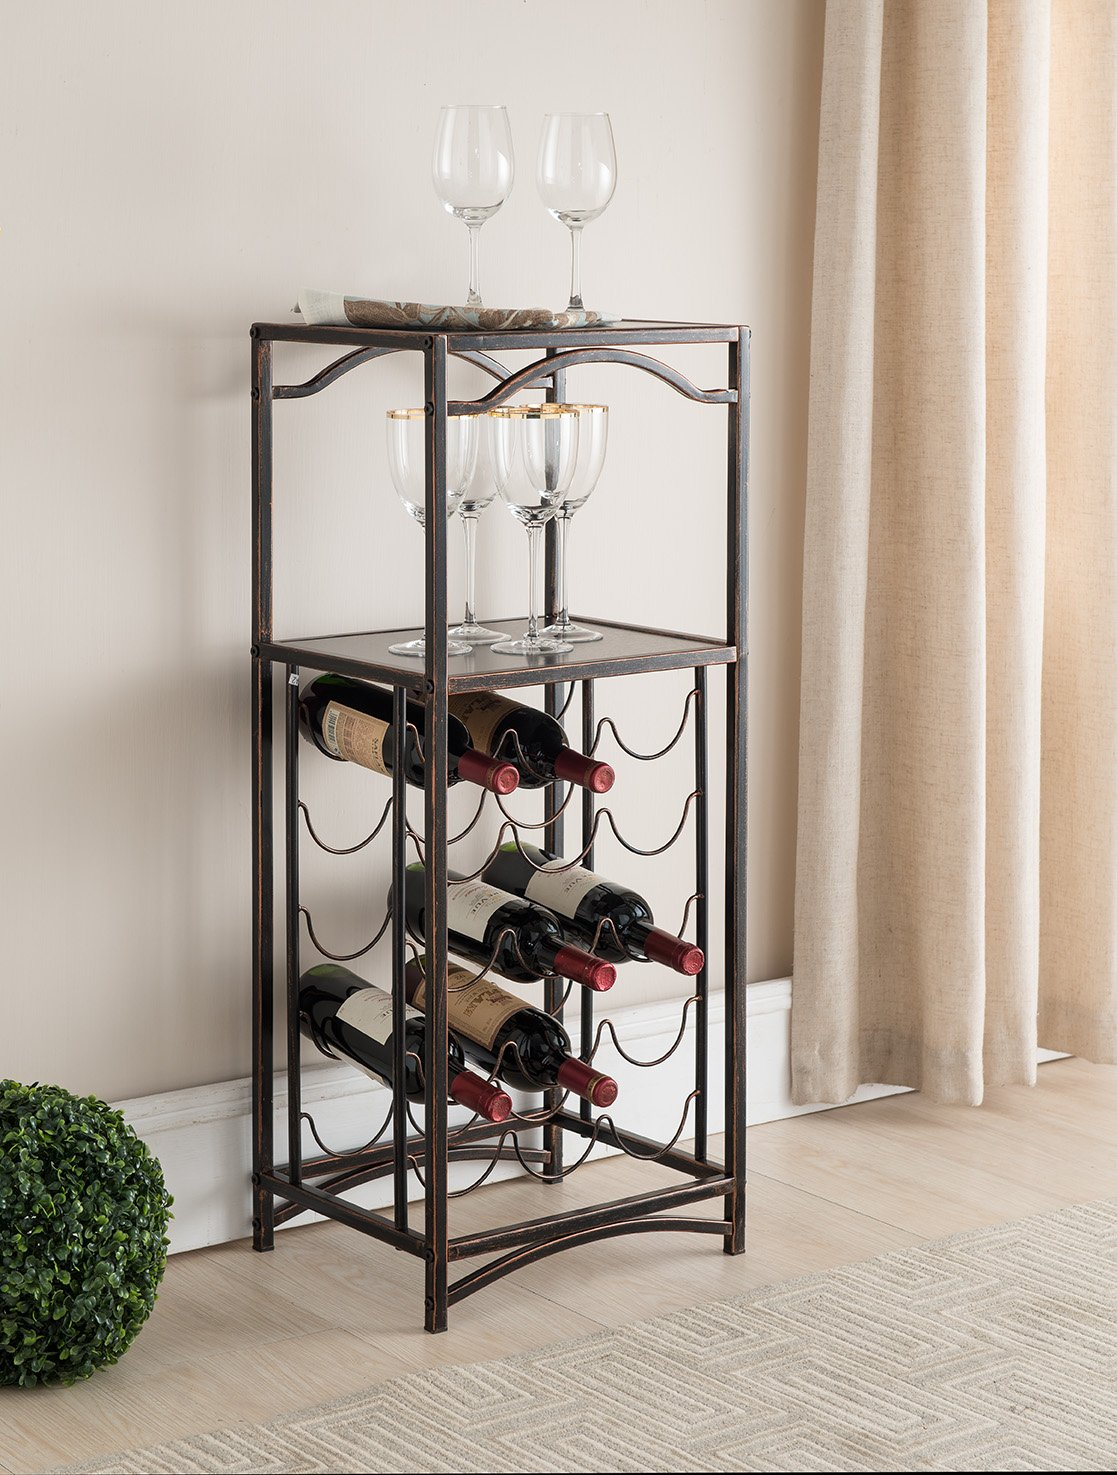 Kings Brand Furniture - Metal 15 Bottle Floor Wine Rack Storage Organizer